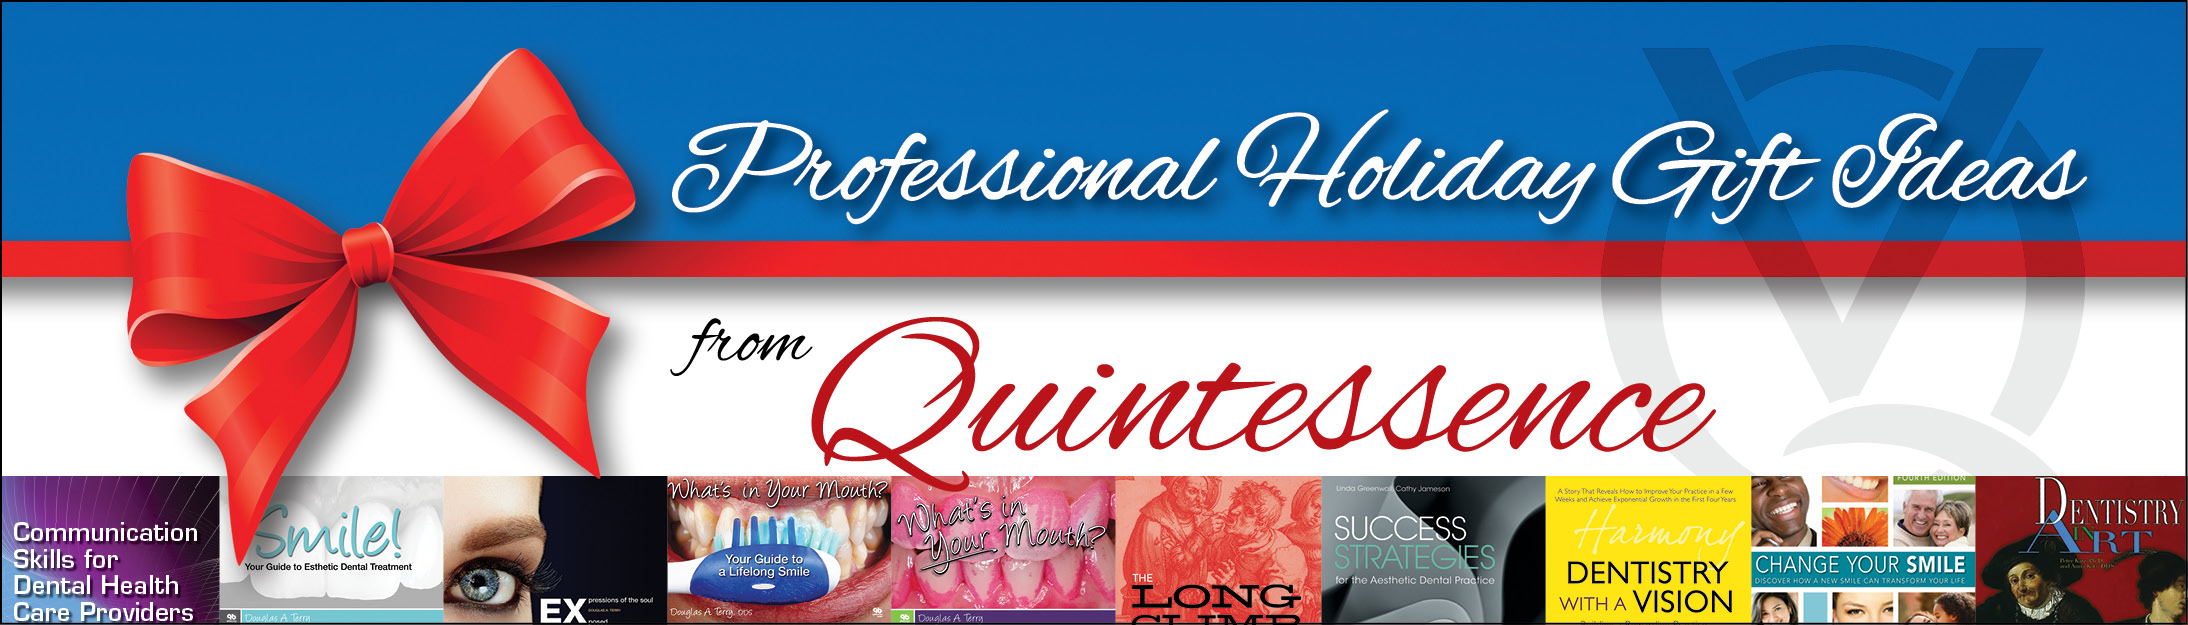 Quintessence Holiday Sale